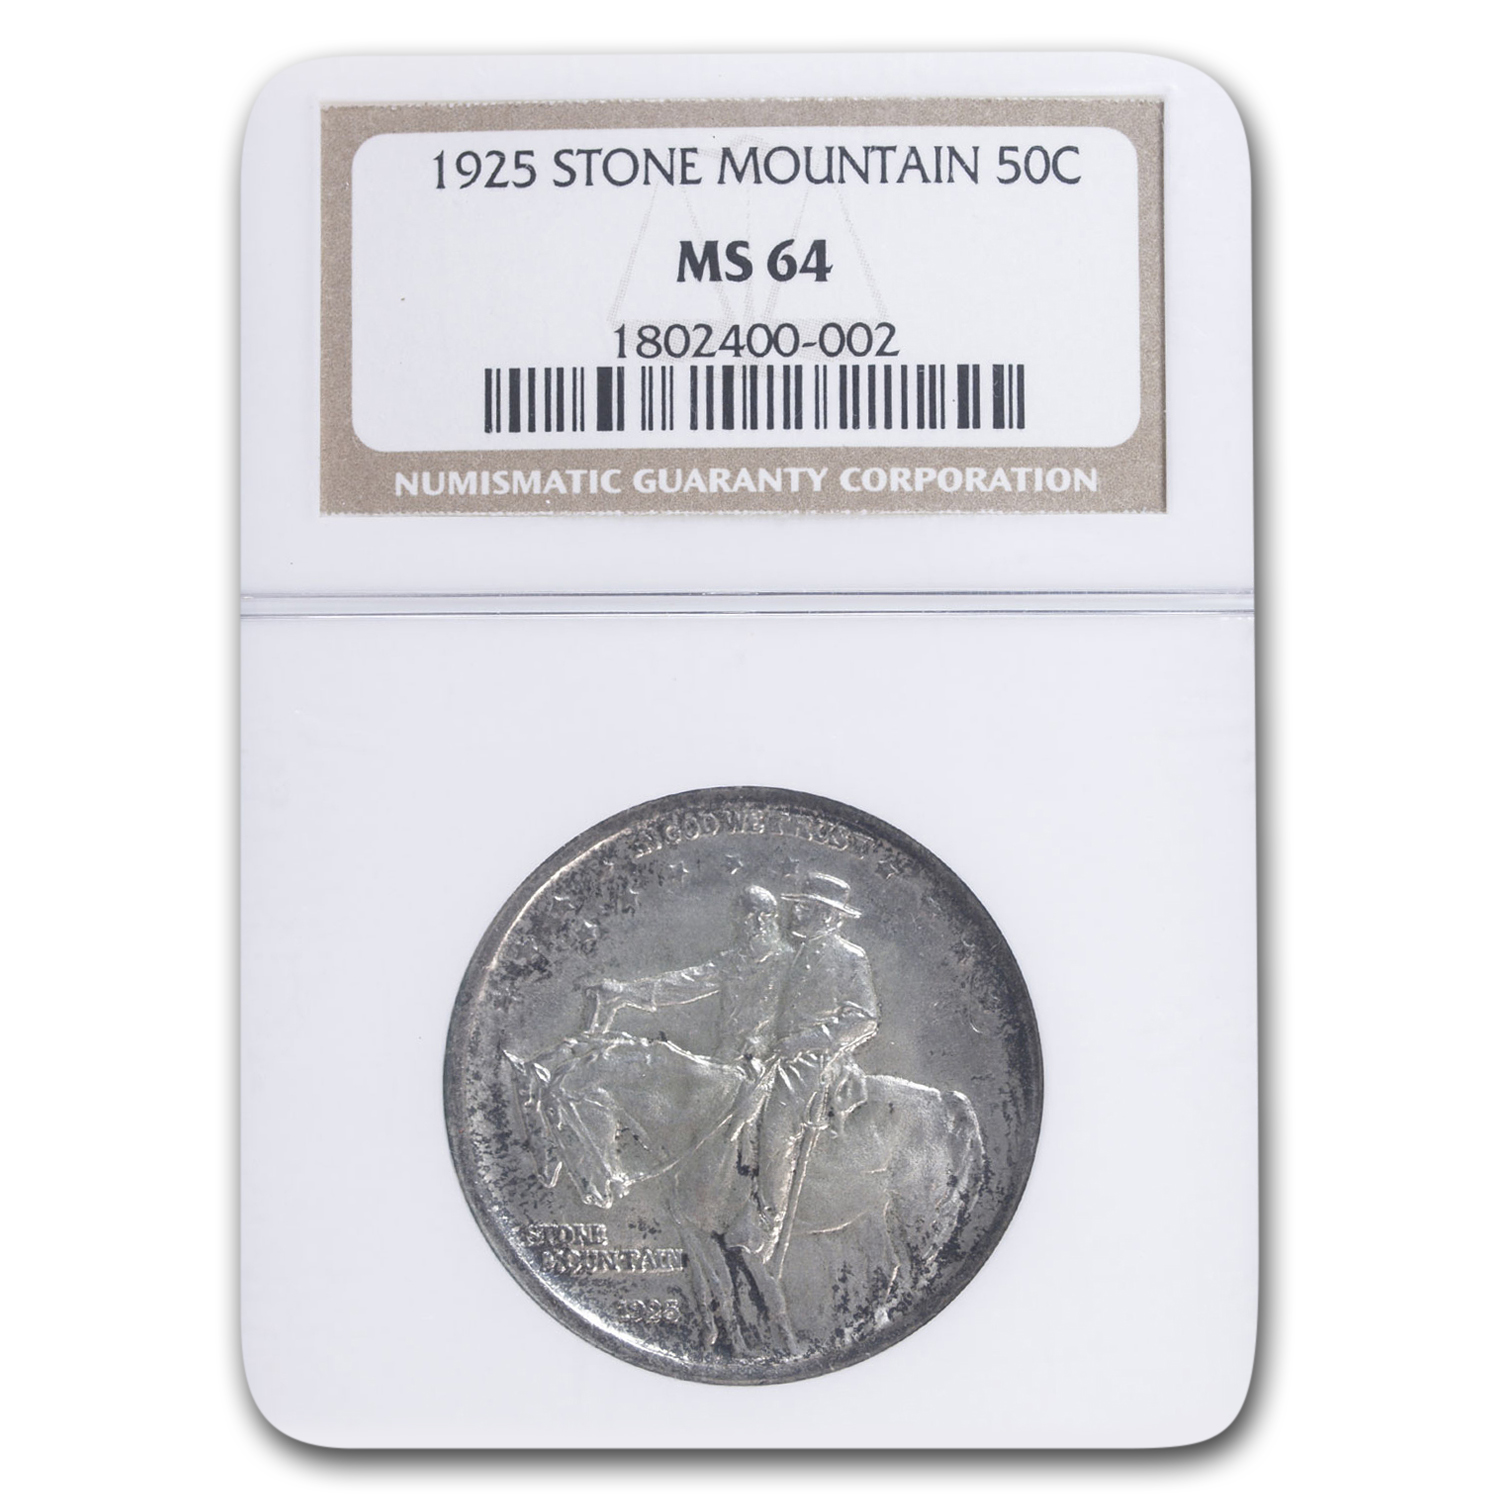 1925 Stone Mountain Memorial Half Dollar MS-64 NGC